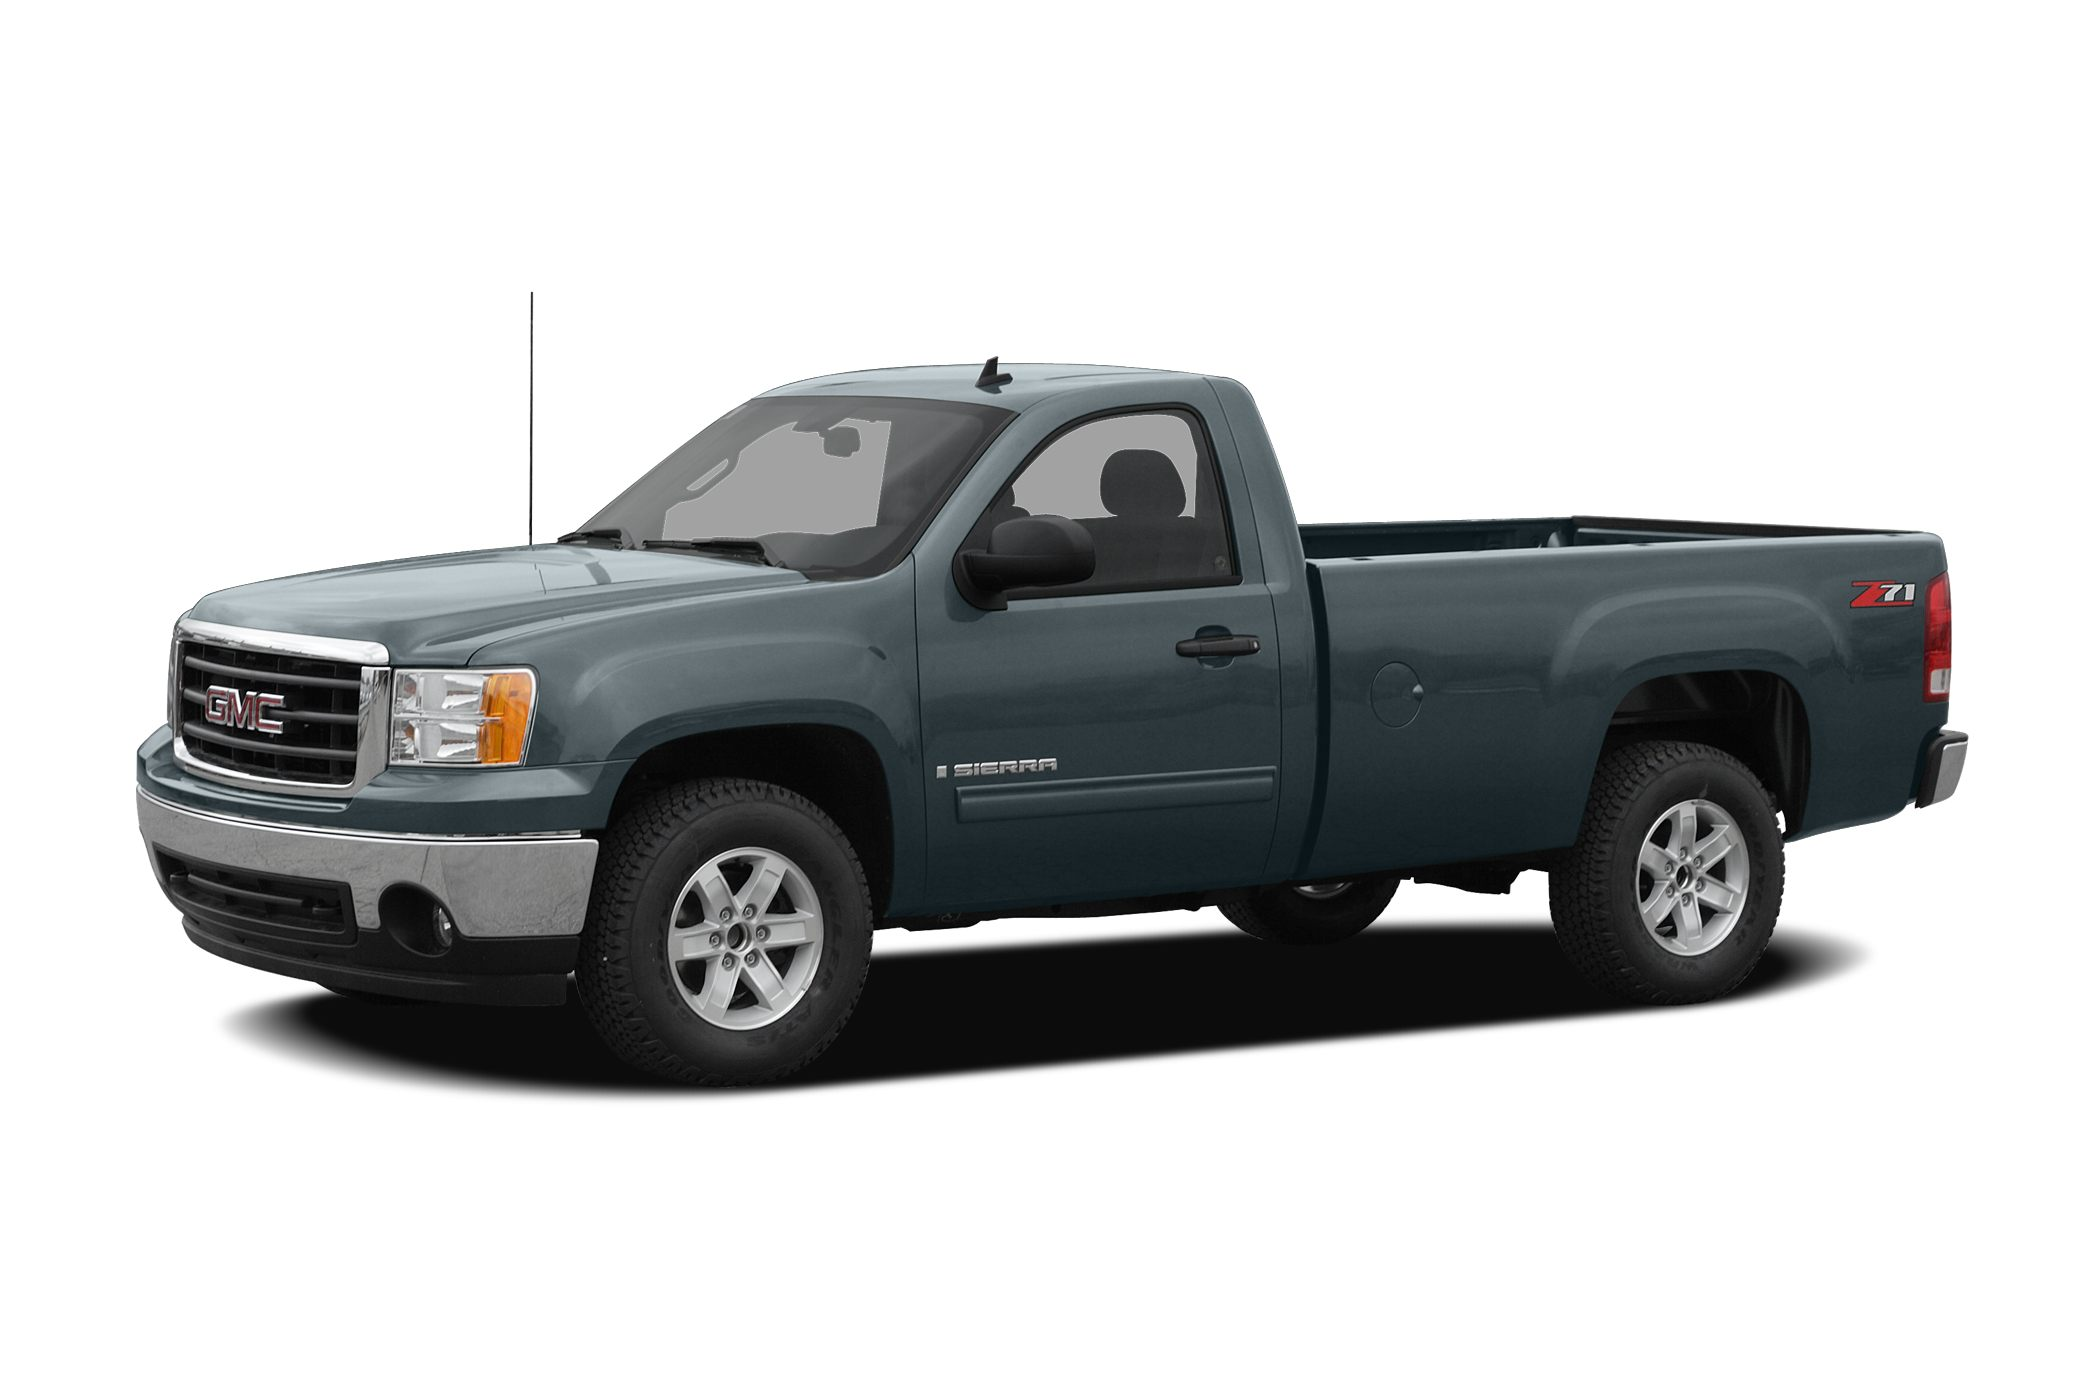 2008 GMC Sierra 1500 Work Truck Regular Cab Pickup for sale in Jackson for $14,988 with 101,560 miles